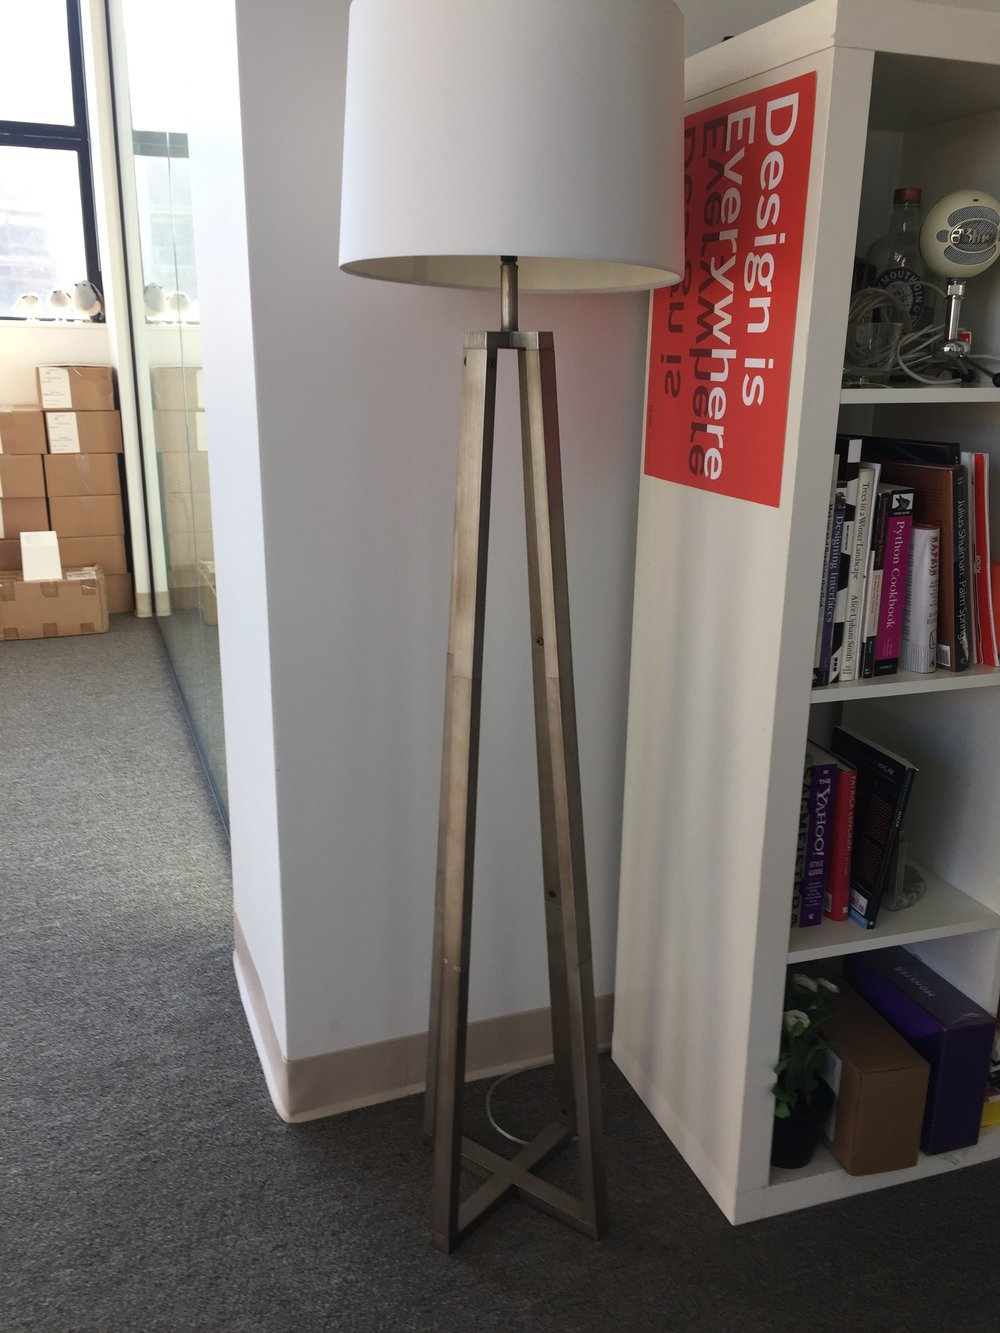 Various Floor Lamps - 3-4 available, $35 each